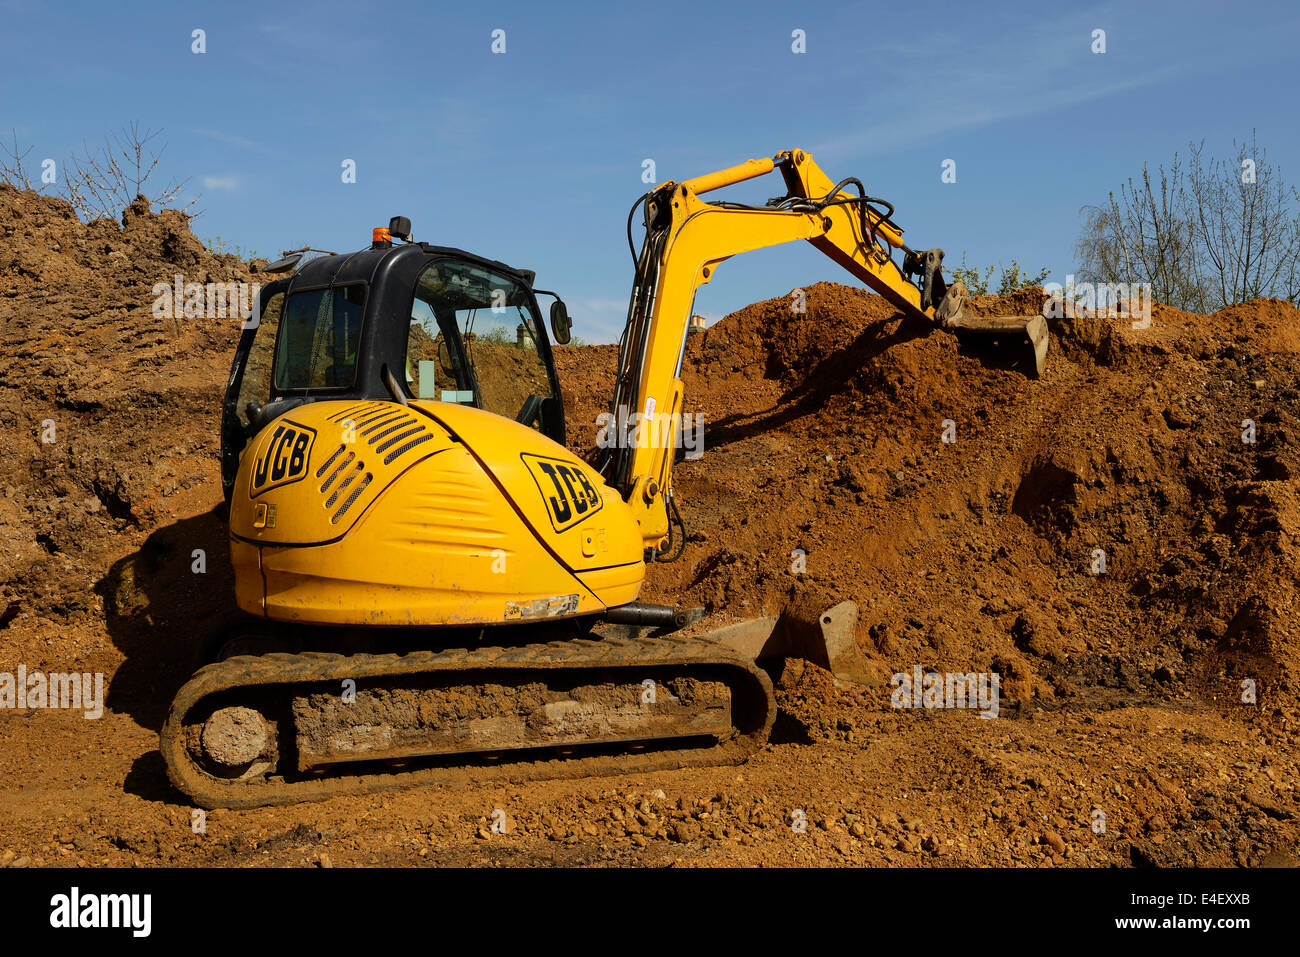 JCB digger moving earth on a construction site - Stock Image